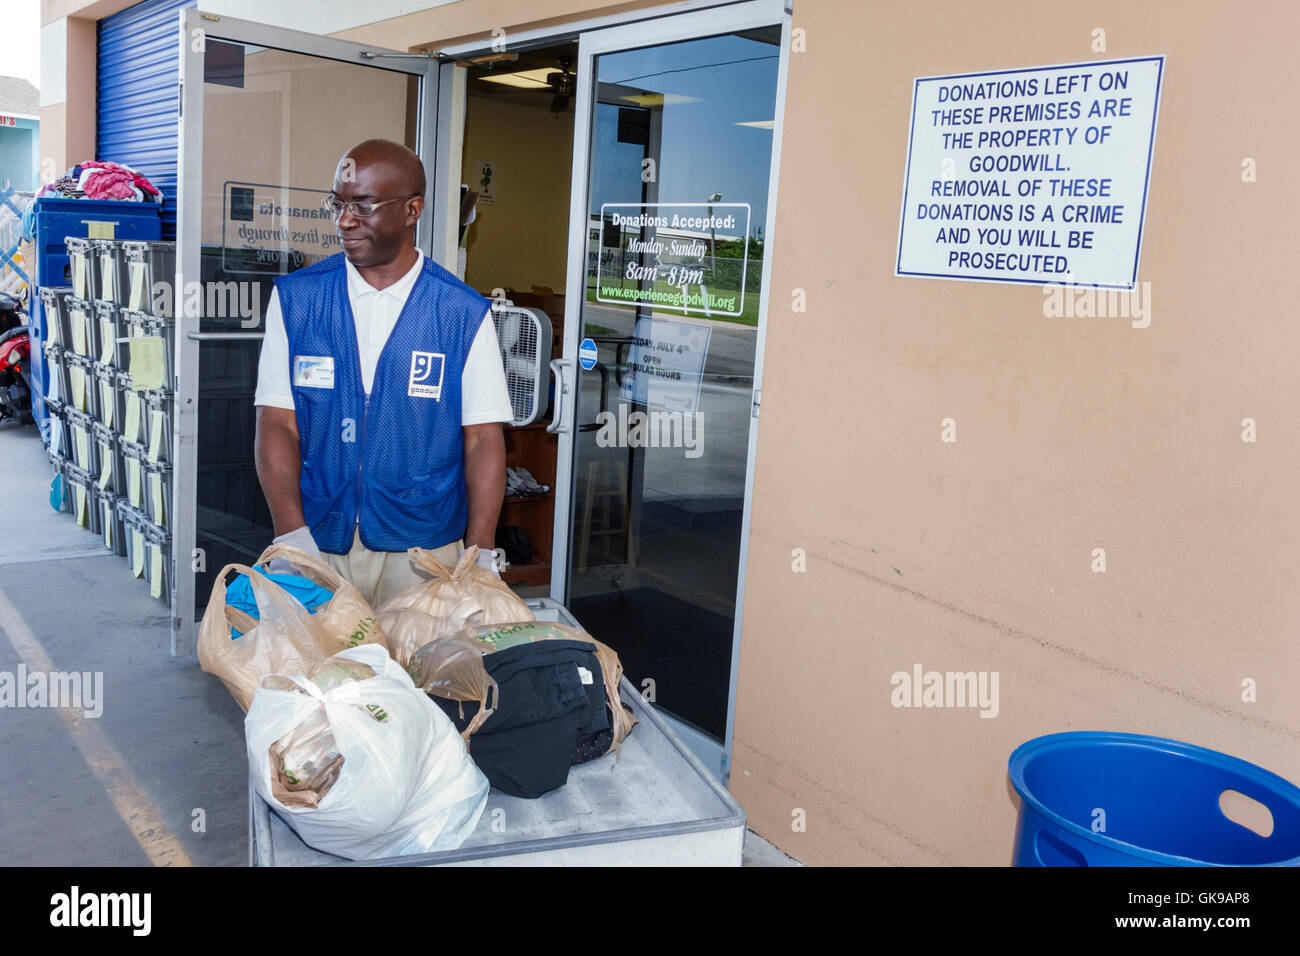 Florida Ellenton Goodwill Industries nonprofit organization thrift store donations center drive-thru worker Black - Stock Image